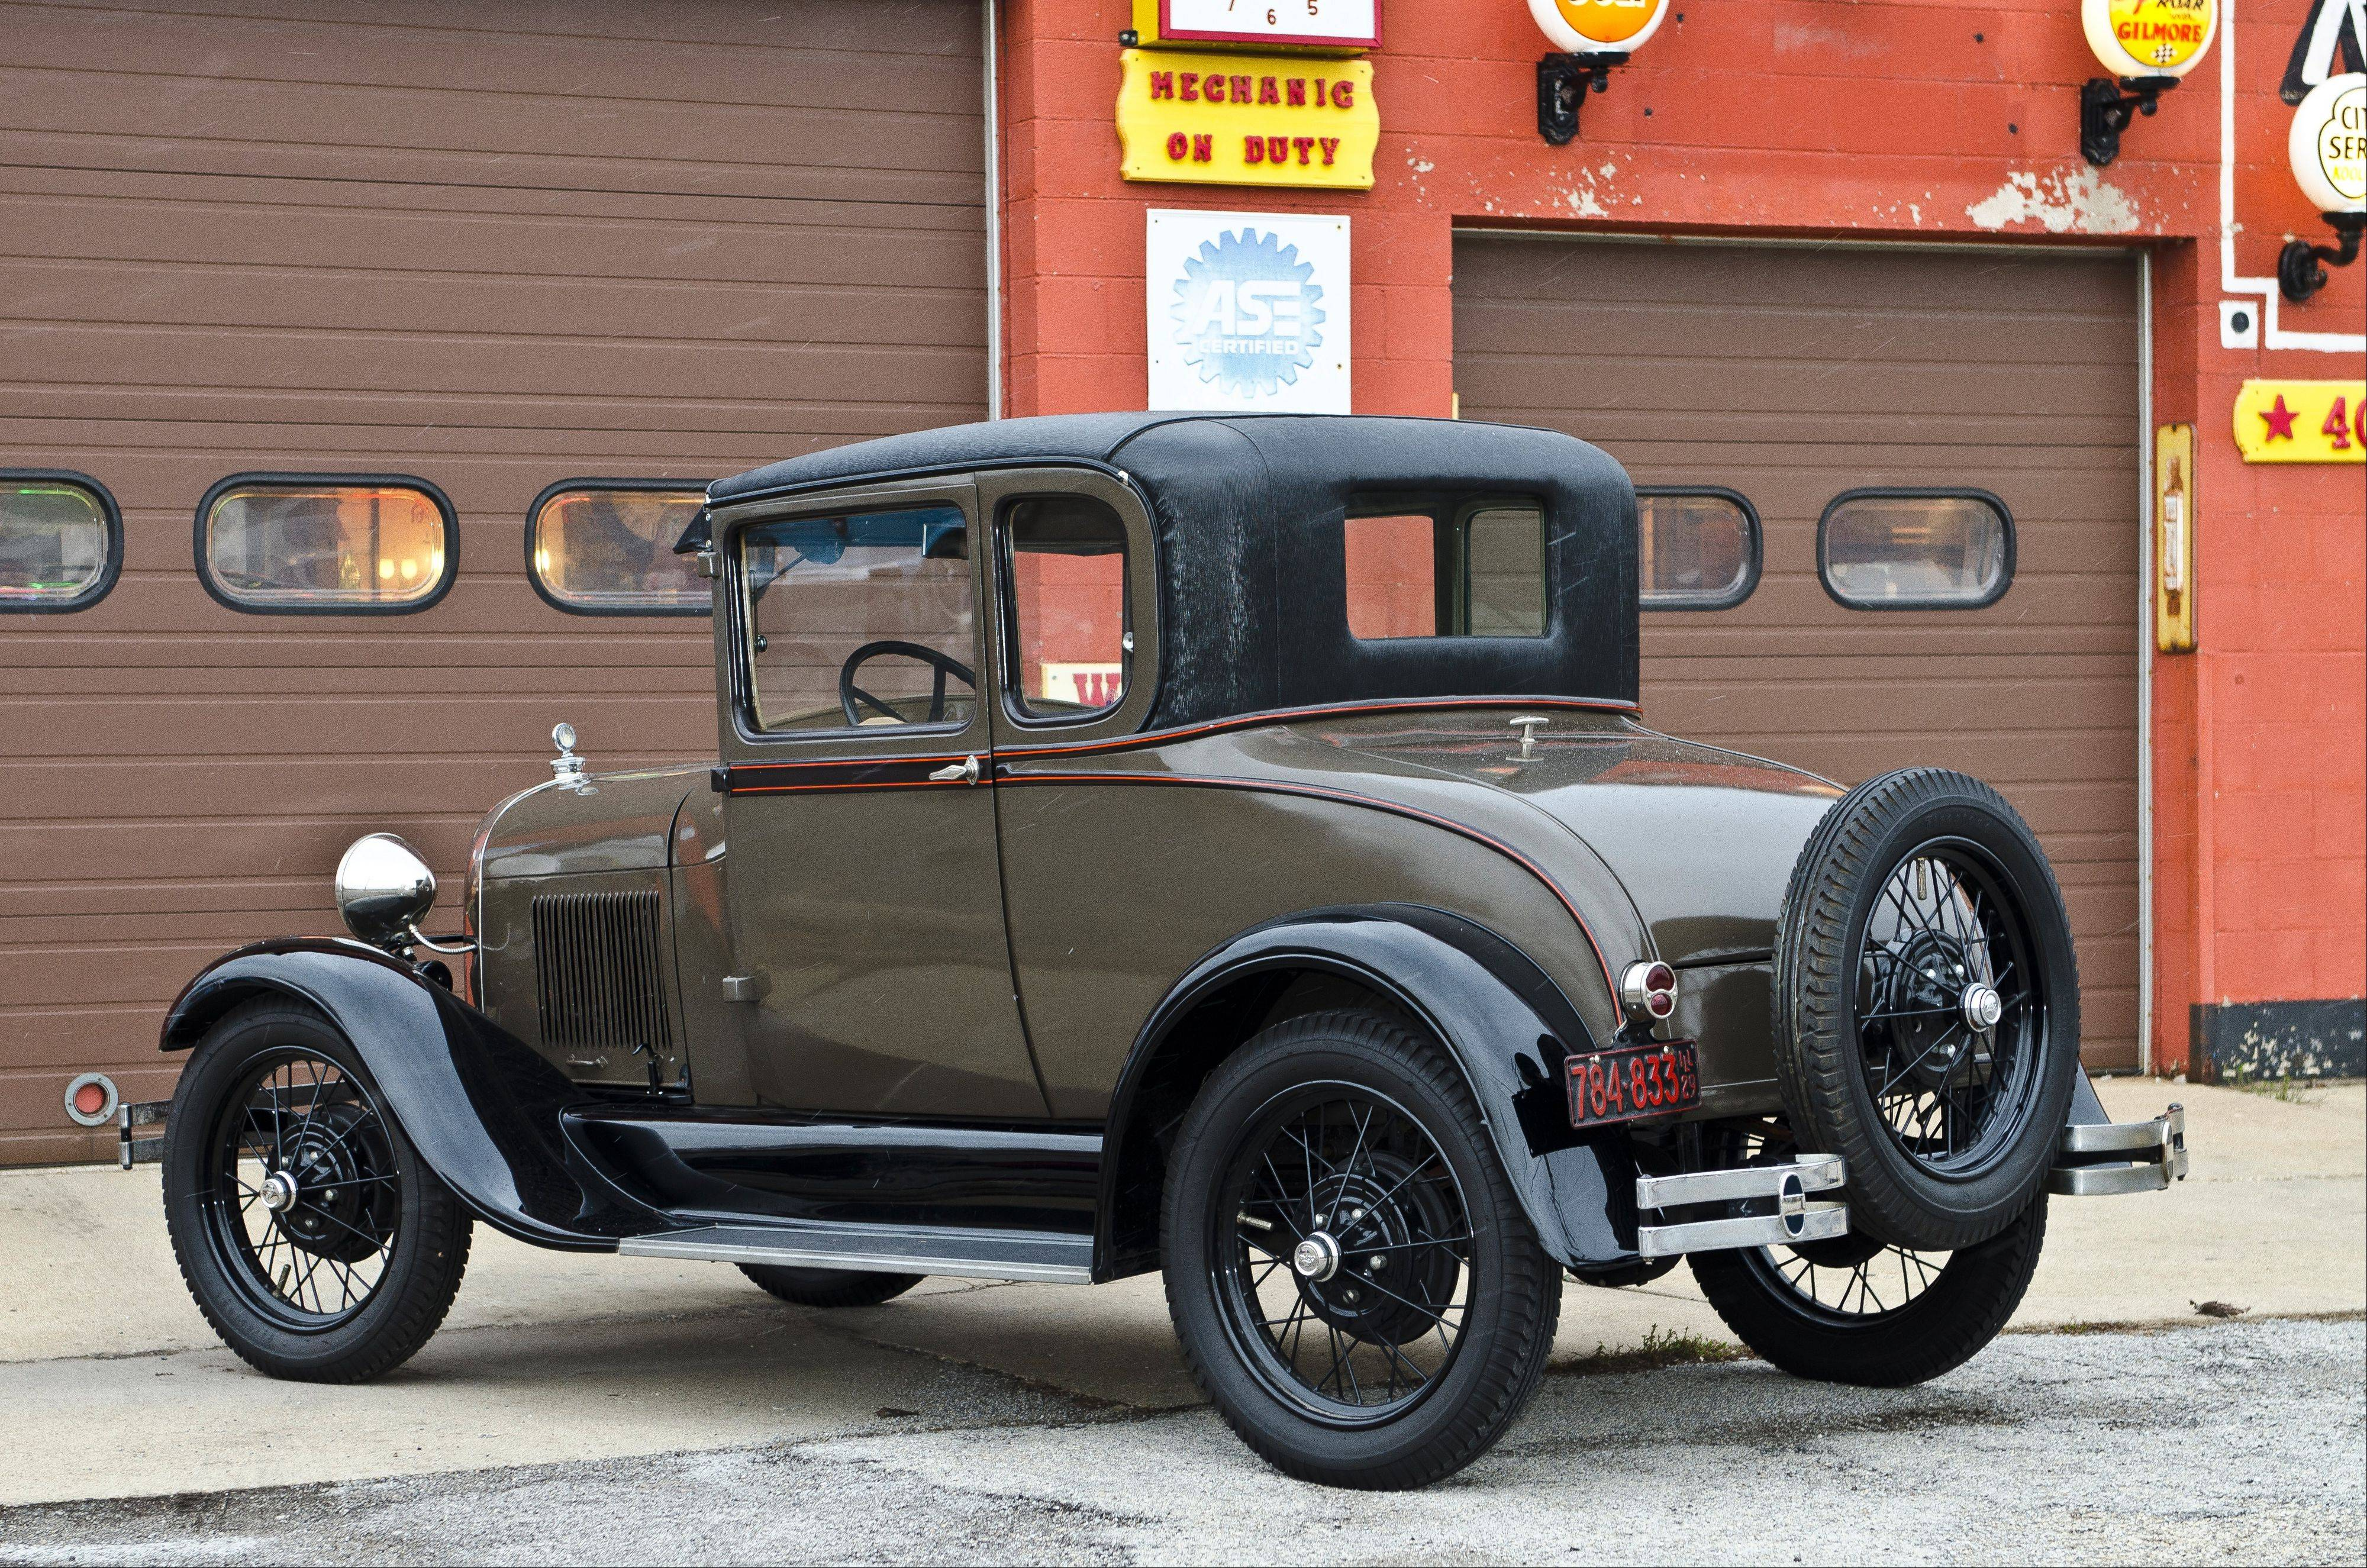 This 1930 Ford Model A Tudor belonging to Halvorsen has been in several movies.